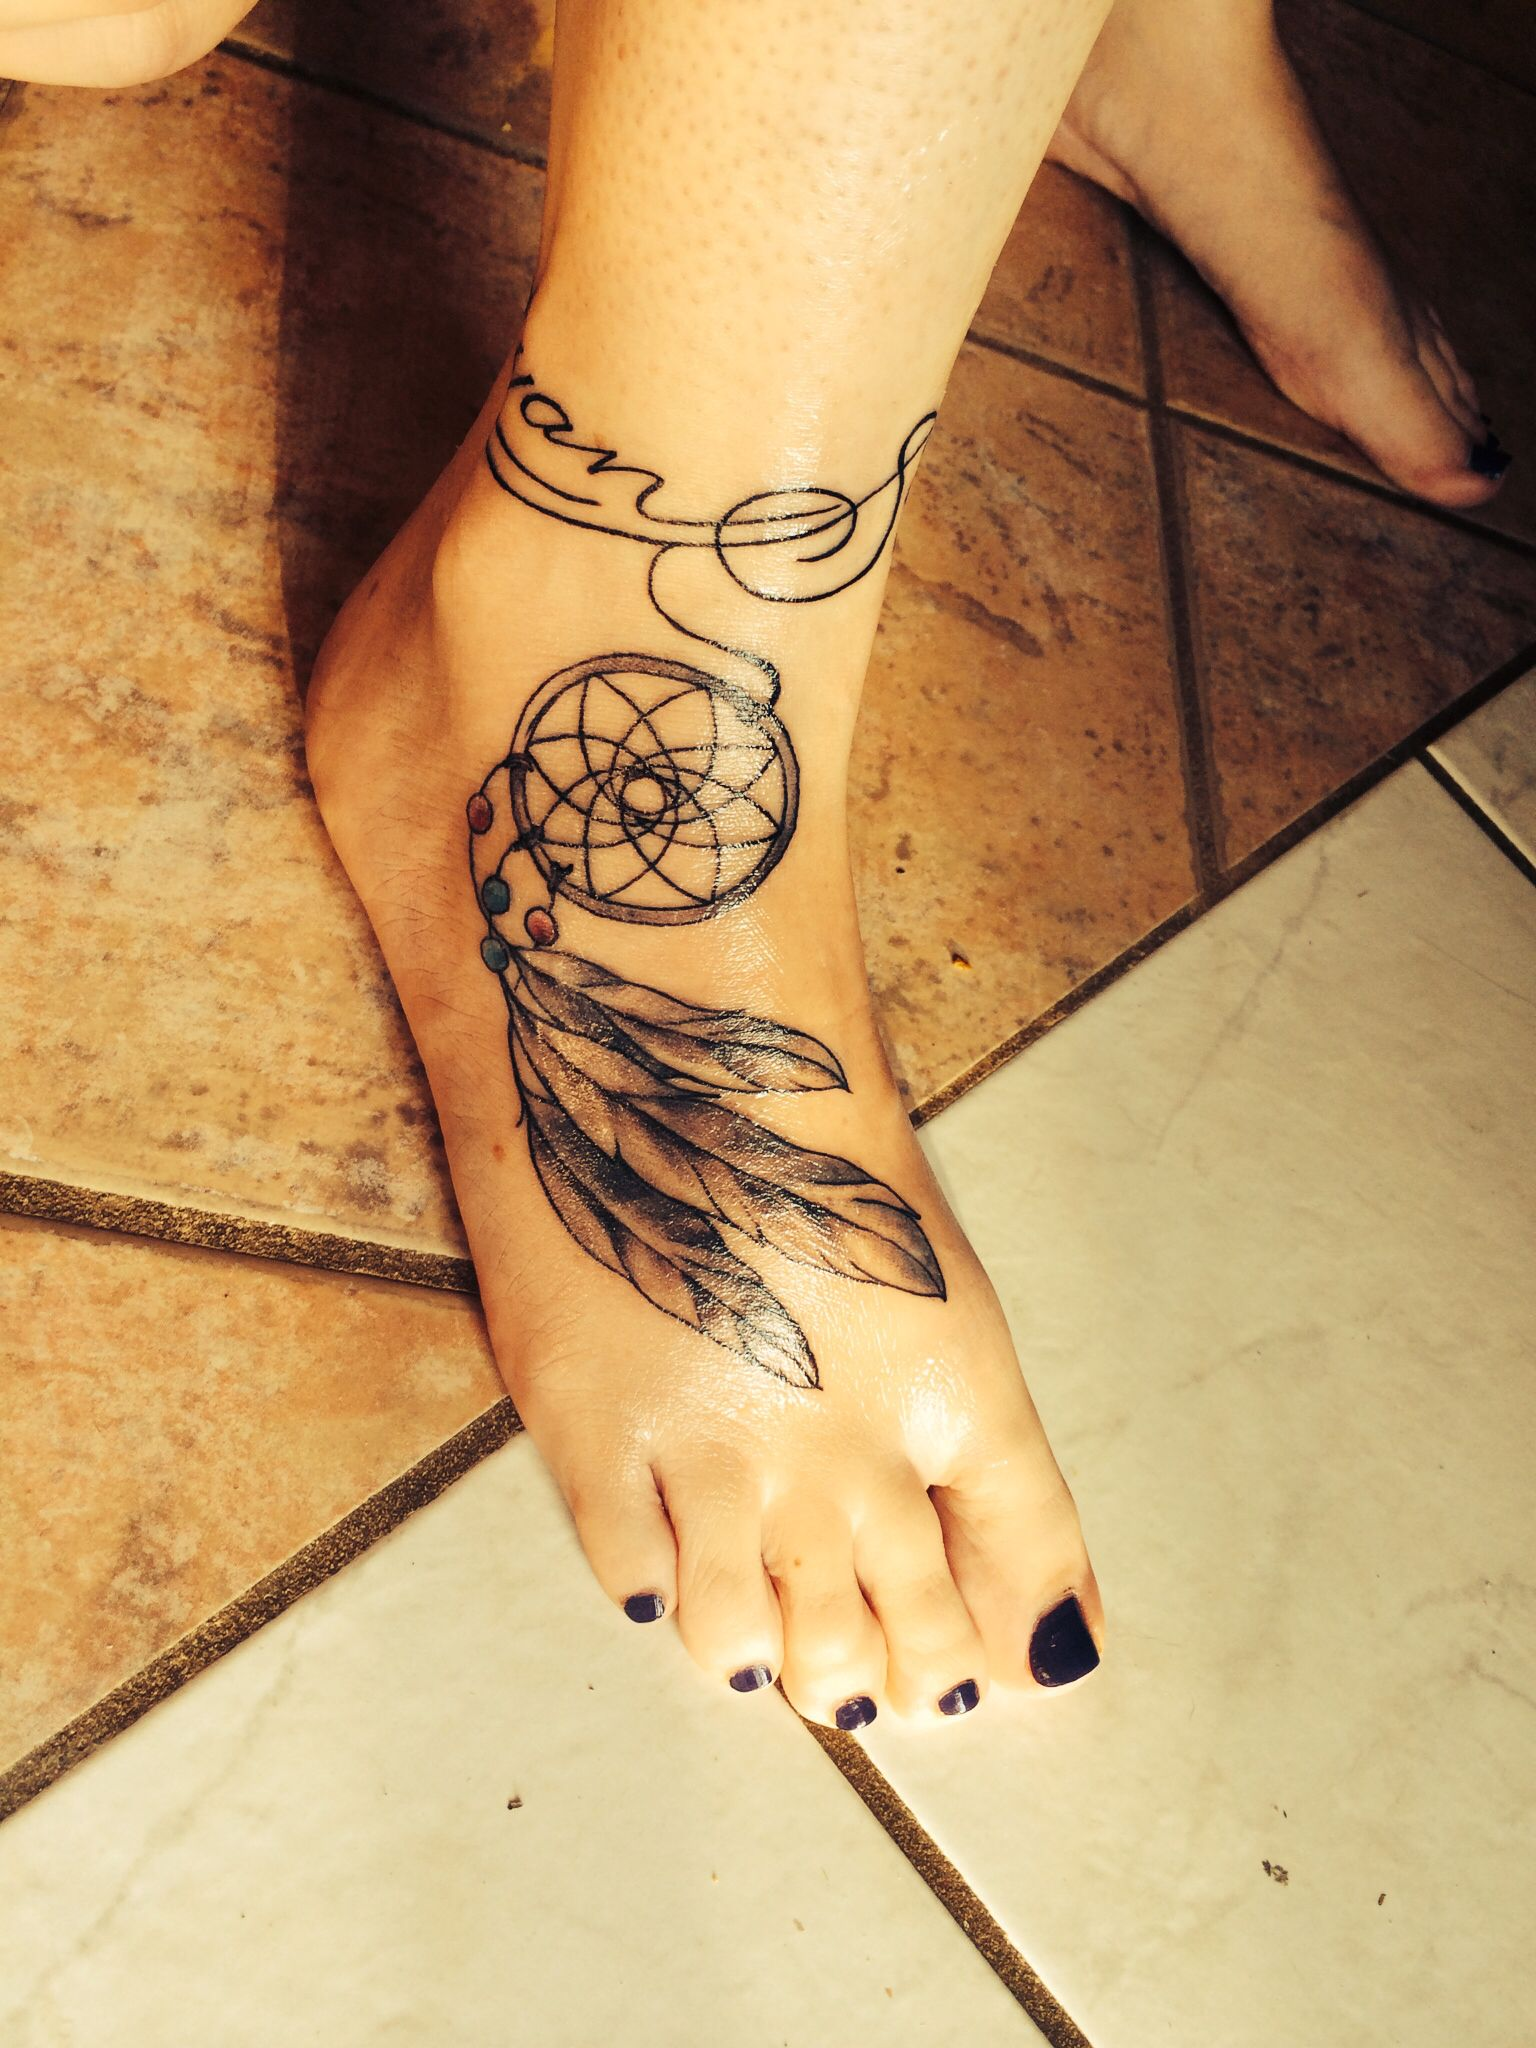 Small Tattoo Ideas For Women Dream Catcher Dreamcatcher Tattoo